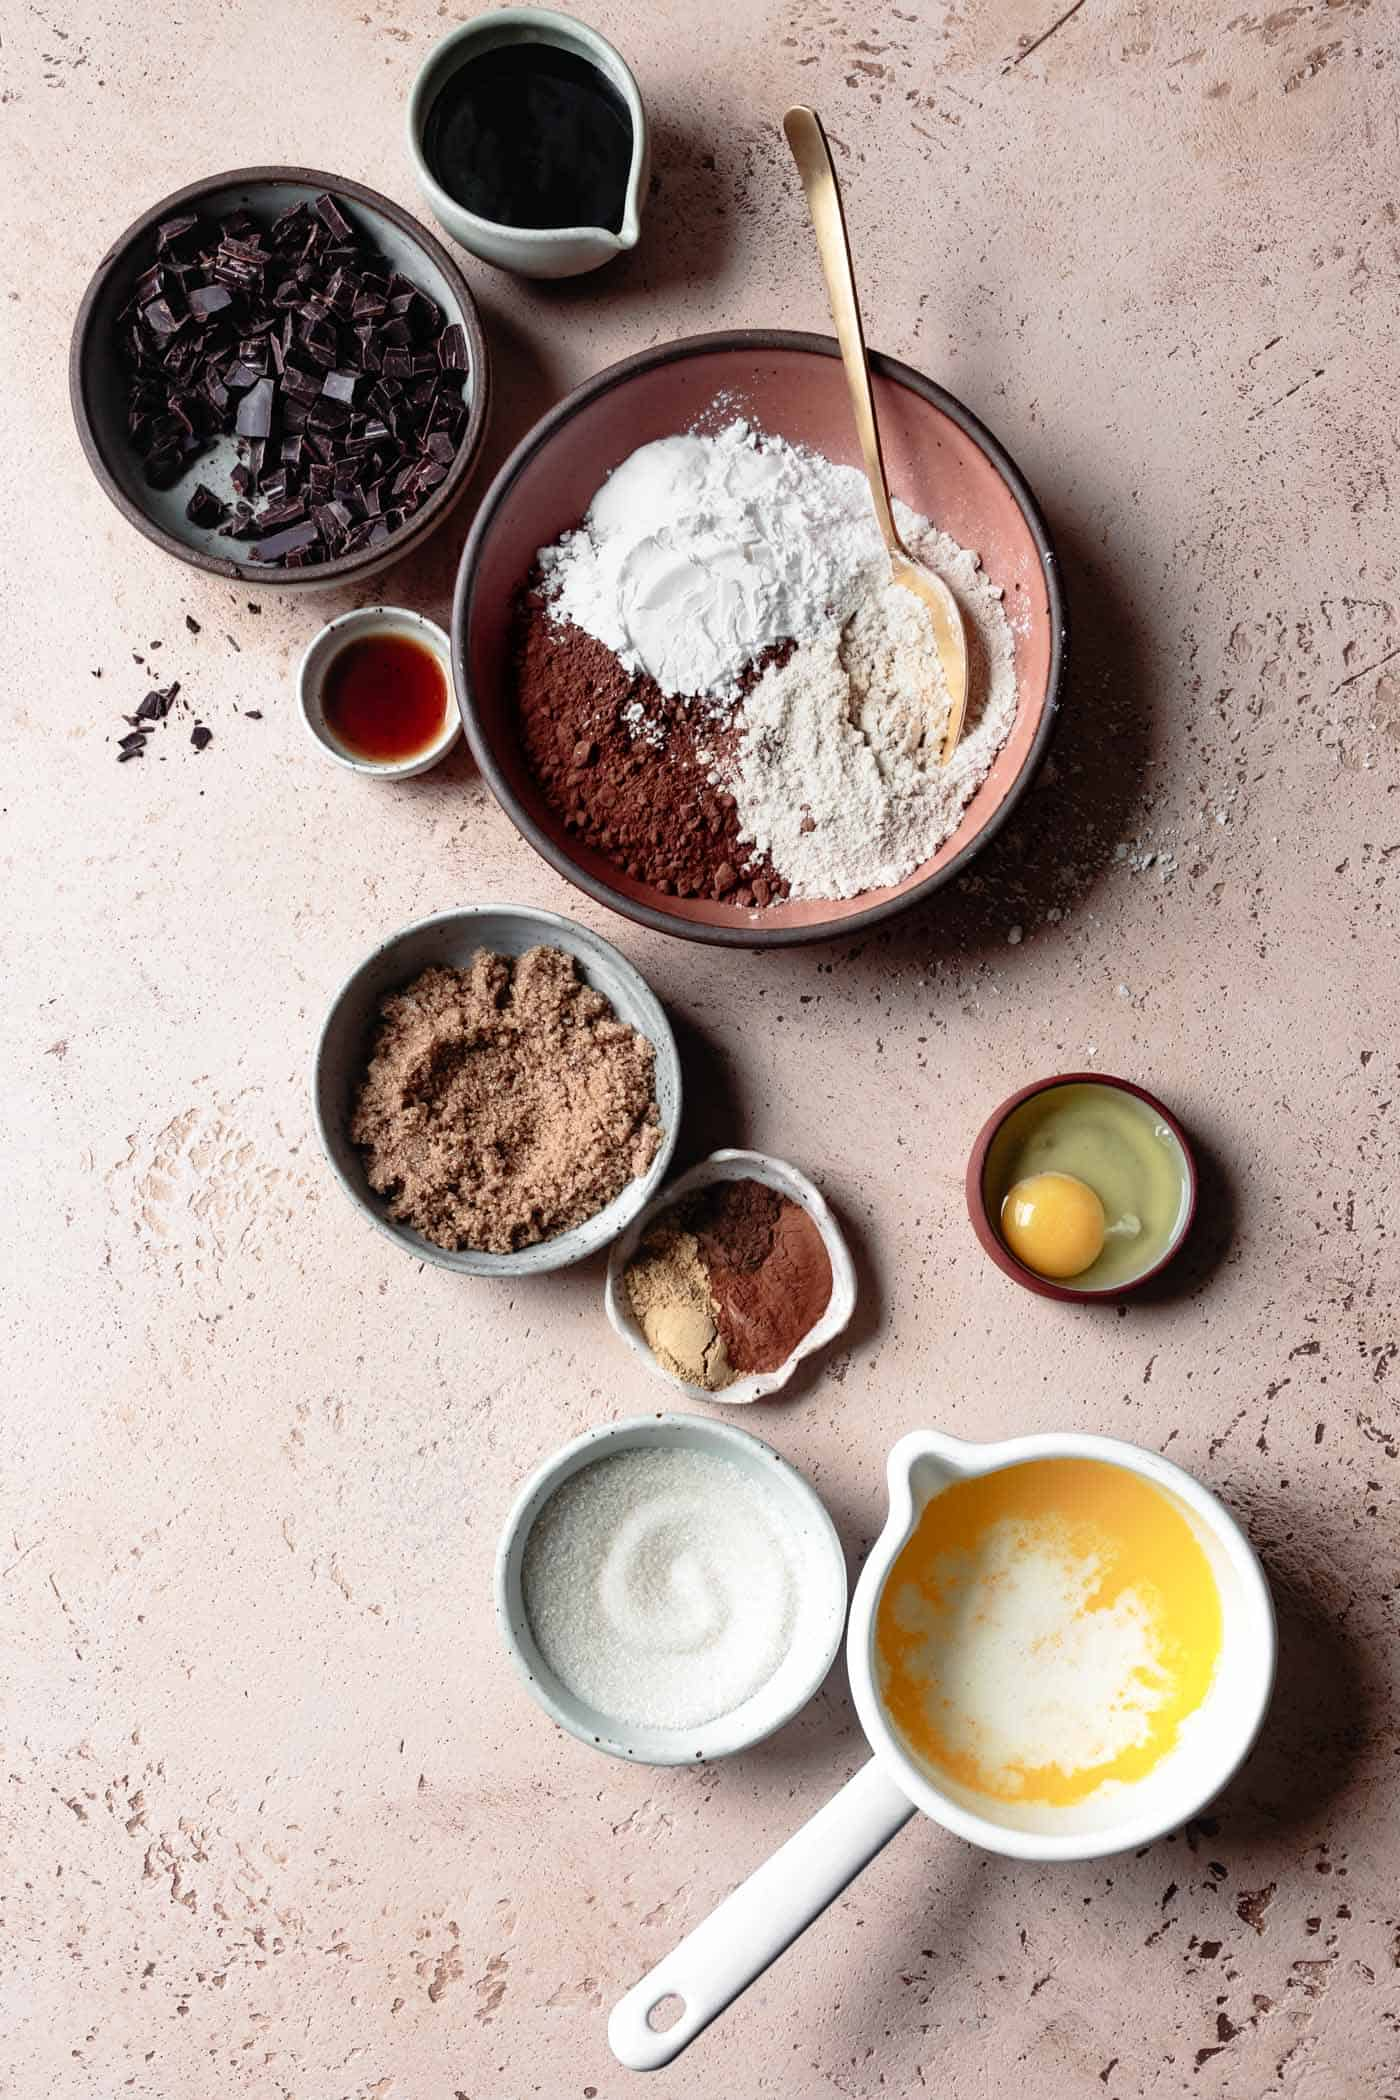 Ingredients for Gluten-Free Chocolate Ginger Cookie recipe